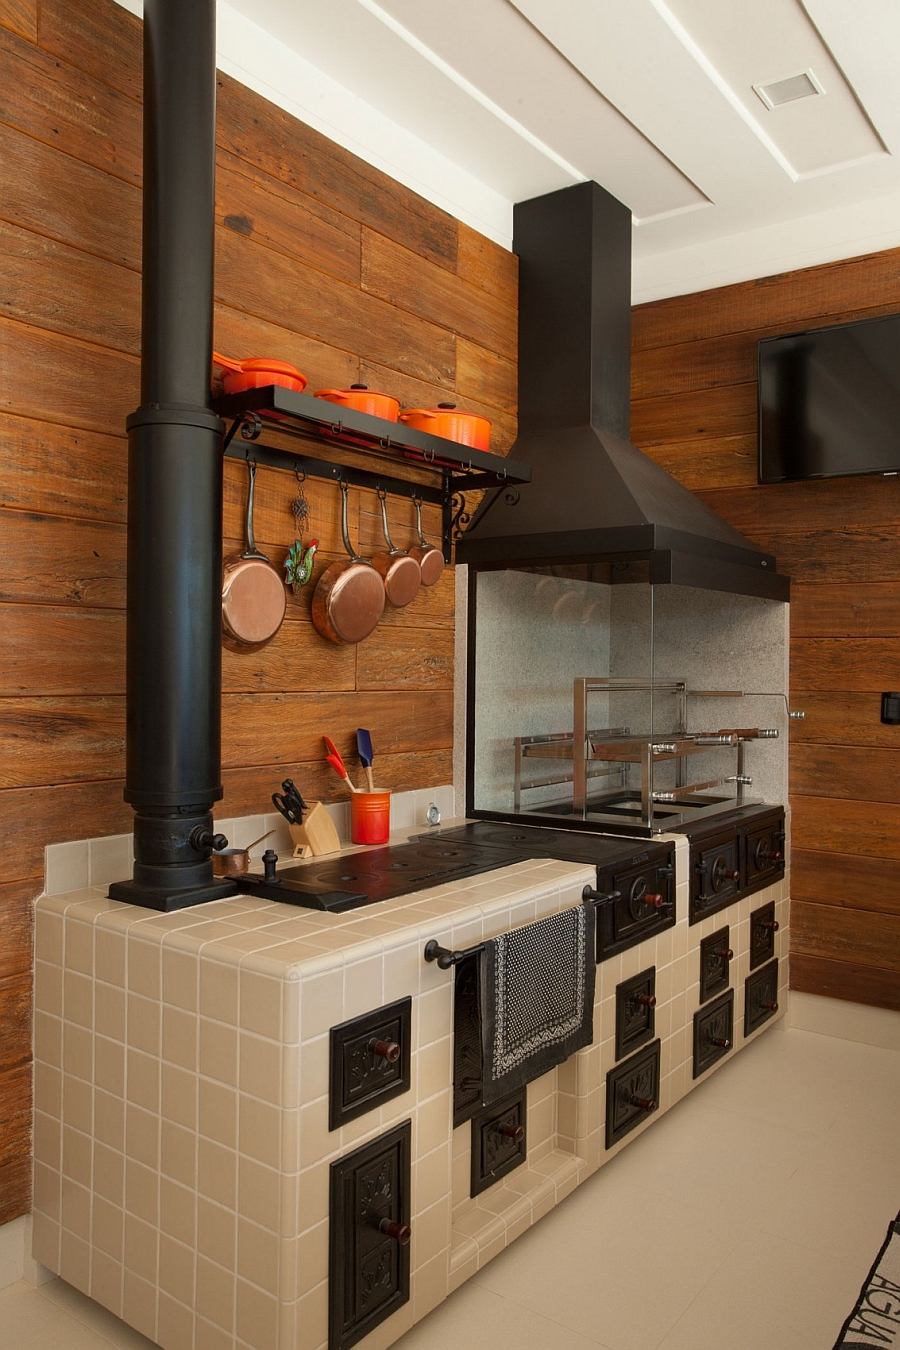 Modern kitchen design with a touch of rustic style